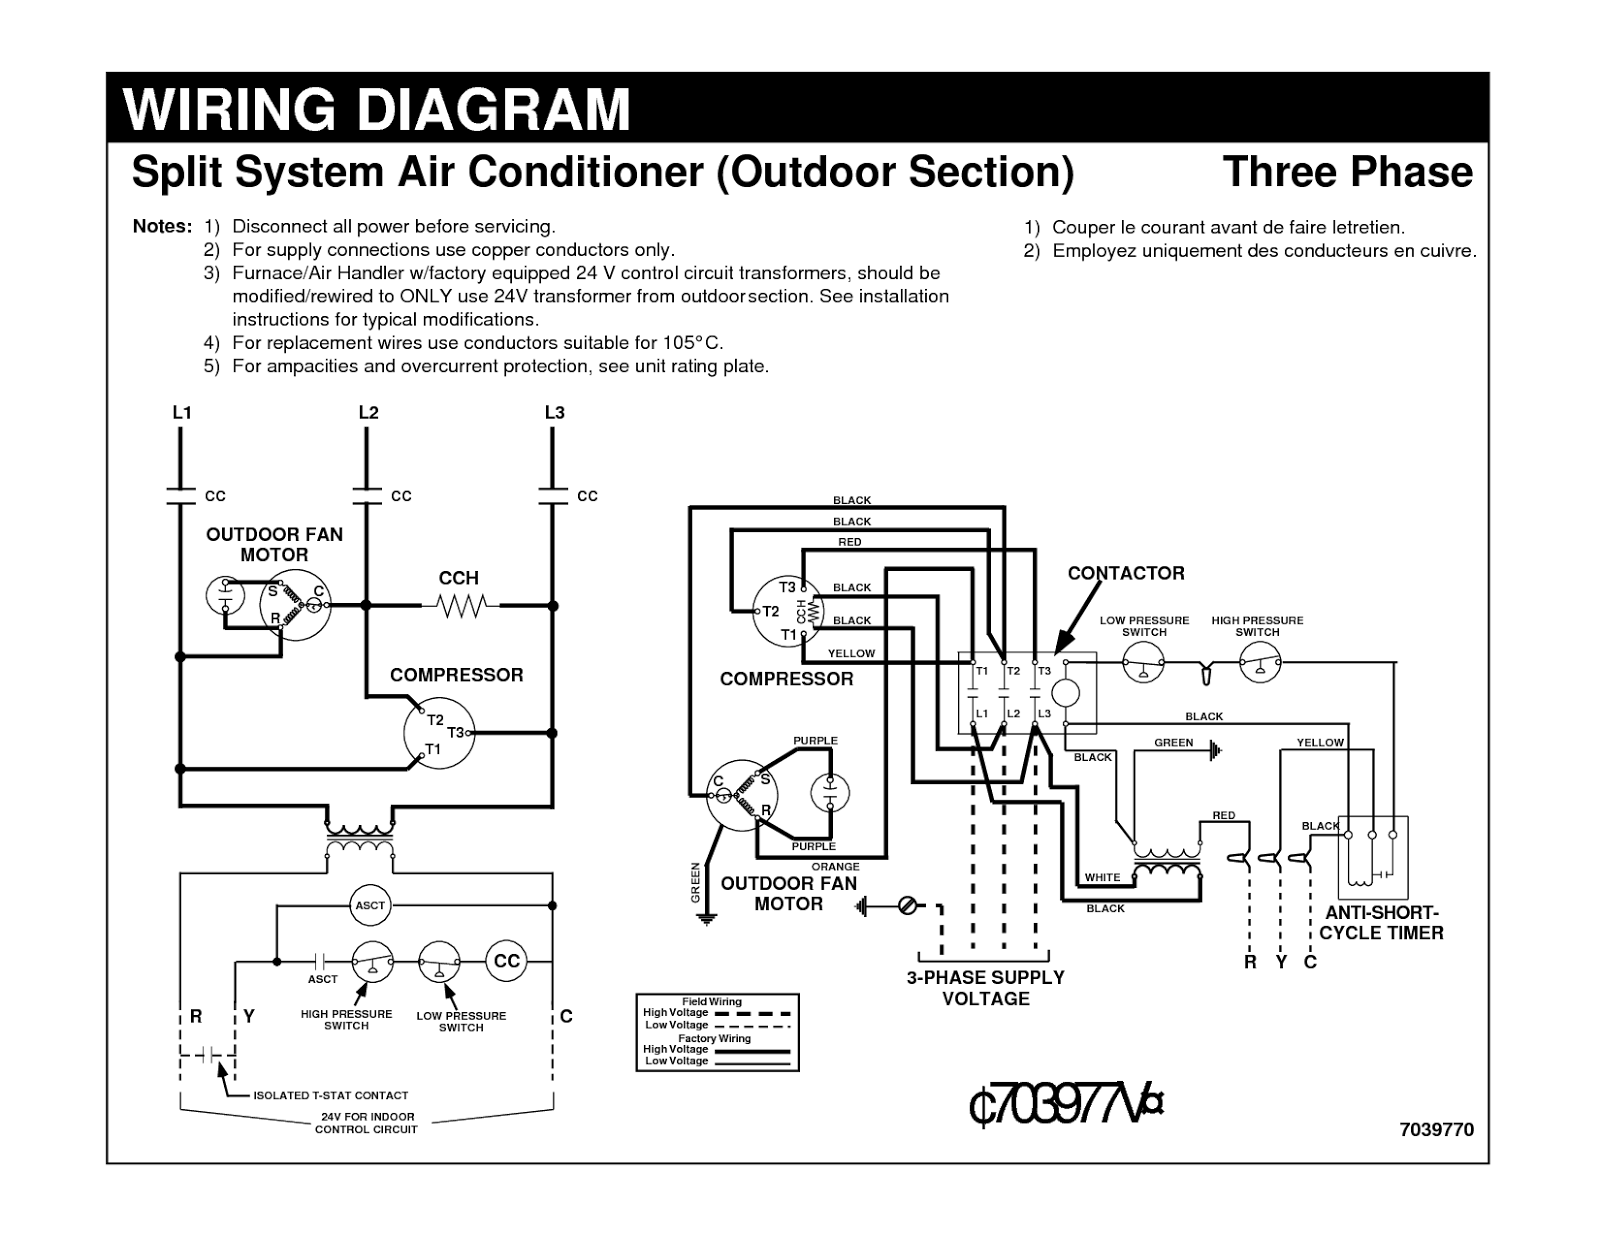 wiring+diagram+in+the+user+manual electrical wiring diagrams for air conditioning systems part one hvac wiring schematics at creativeand.co